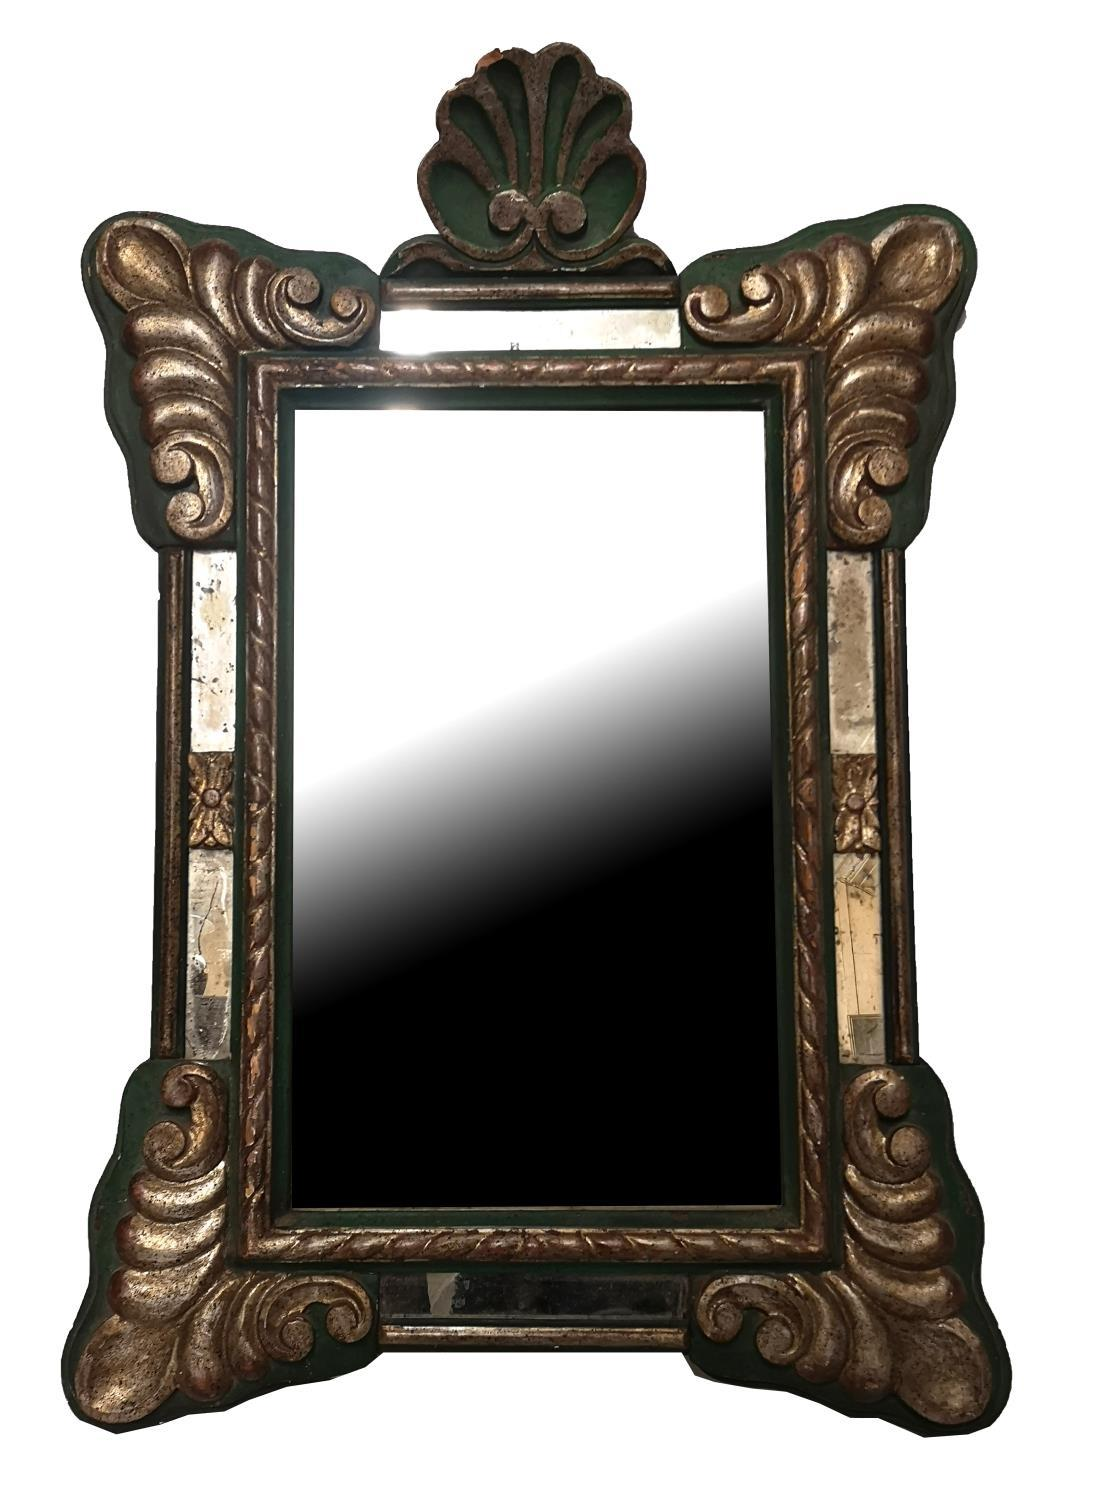 Lot 768 - A 19TH CENTURY CARTOUCHE FRAMED MIRROR With shell pediment and raised decoration, detailed on a